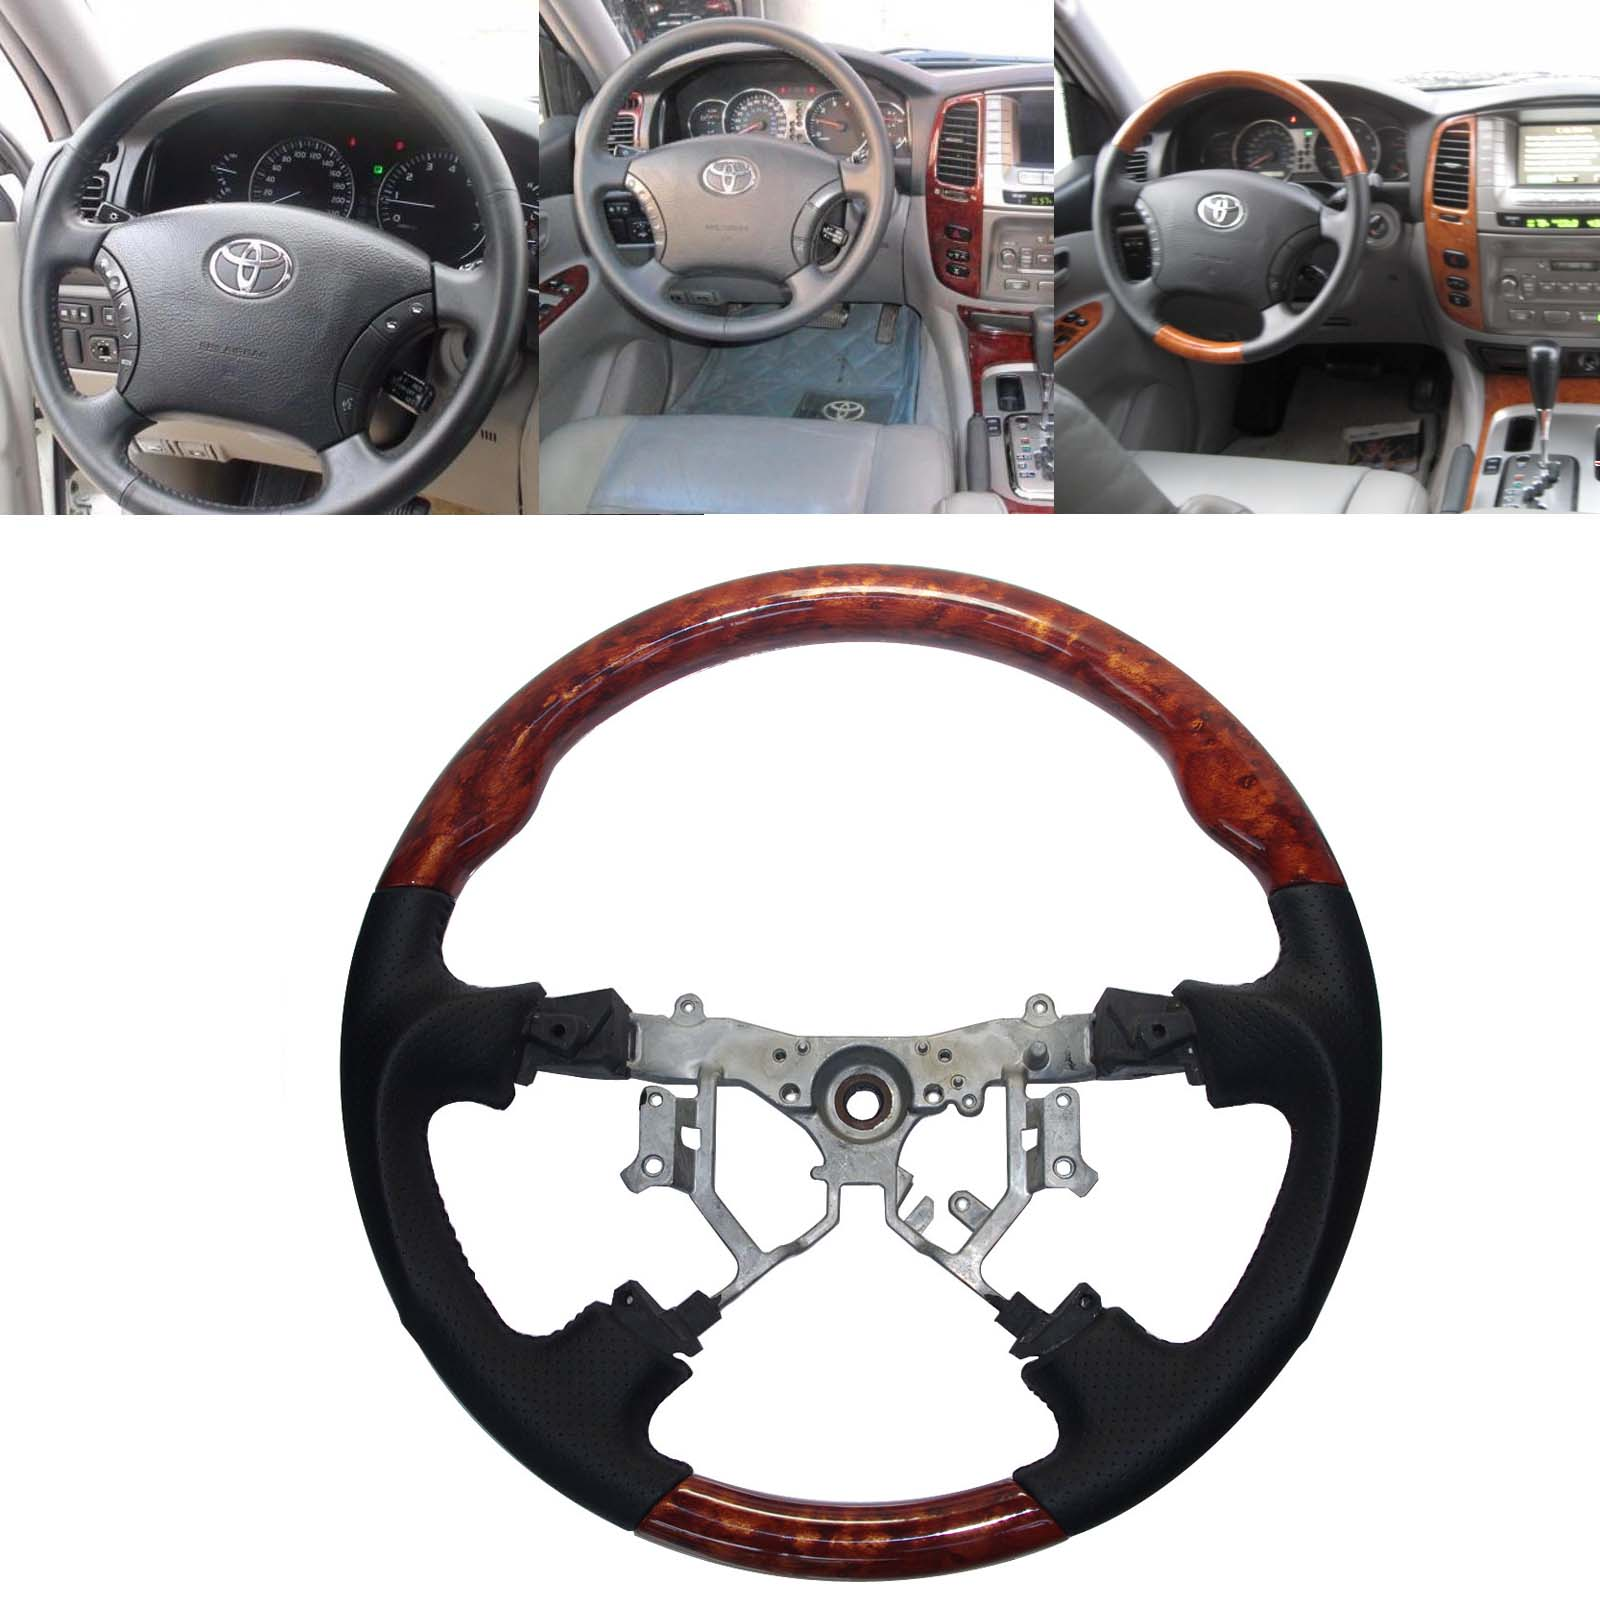 hight resolution of black leather wood steering wheel for 2003 2009 toyota 4runner sequoia sienna tundra camry previa tacoma hiace estima hilux